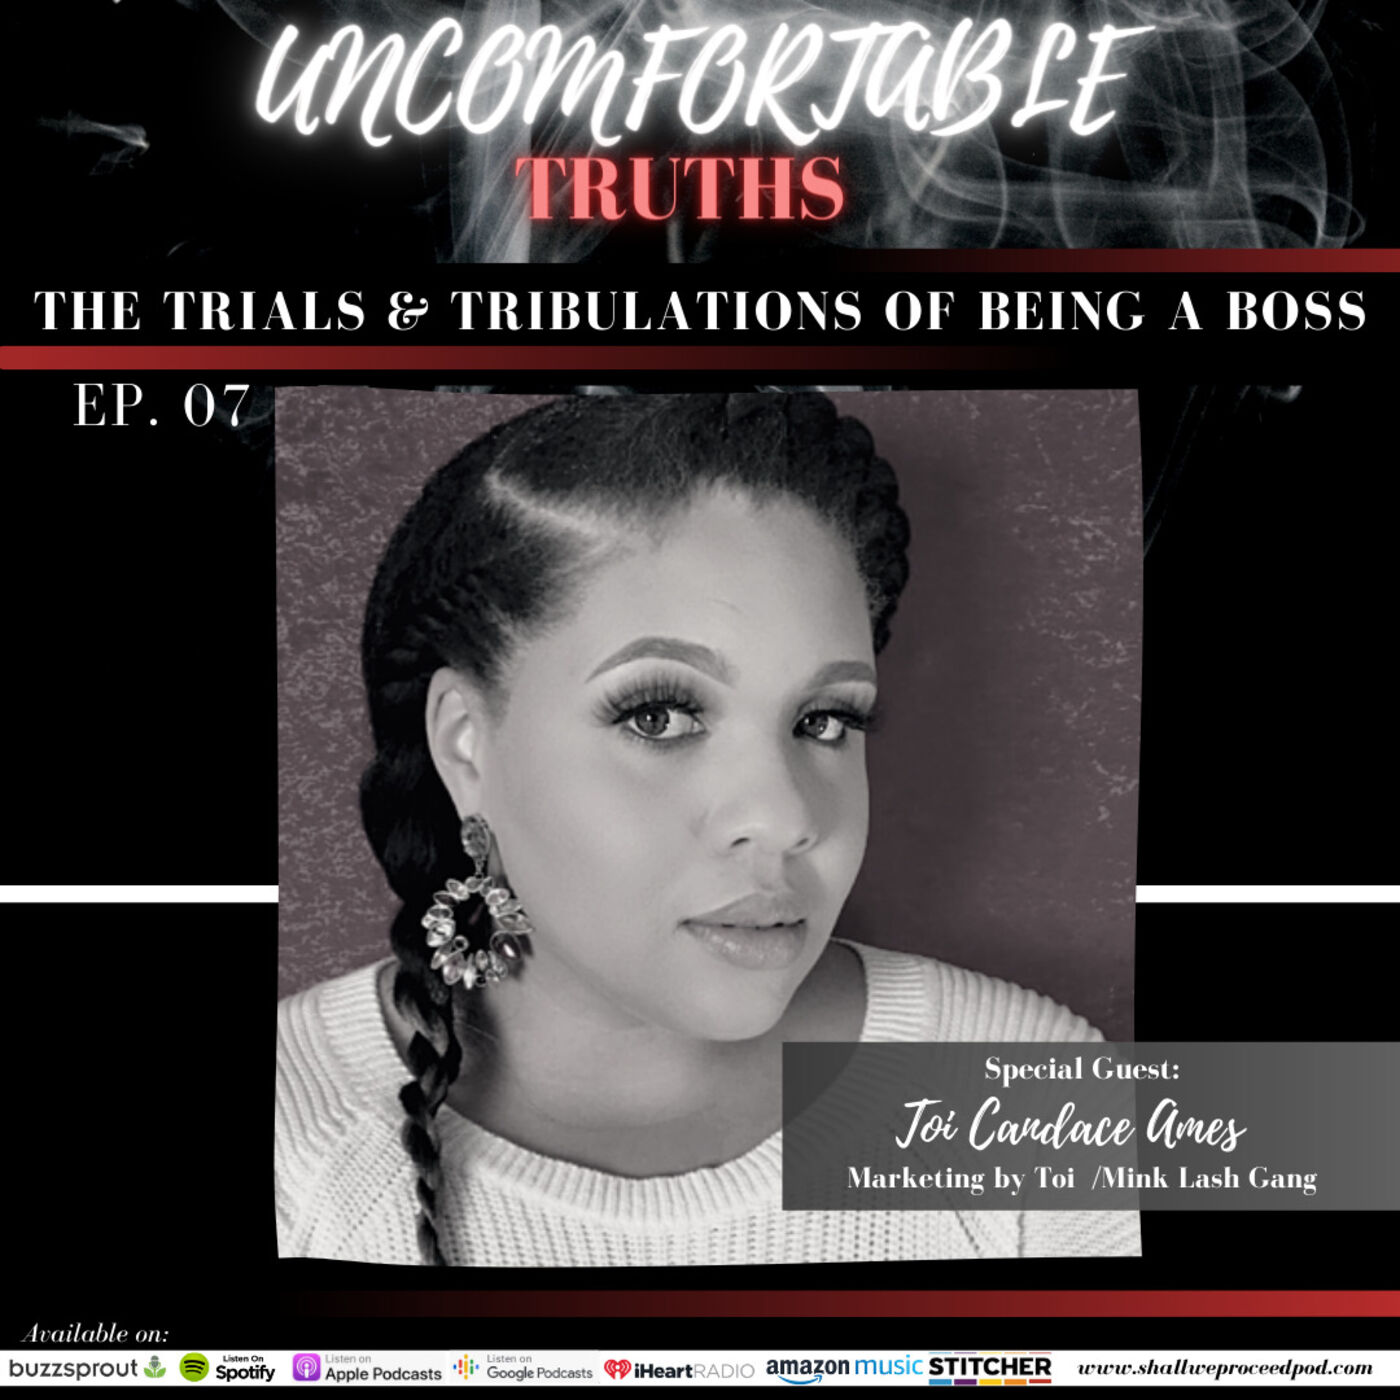 The Trials & Tribulations of Being a BOSS w/ Toi Candace Ames